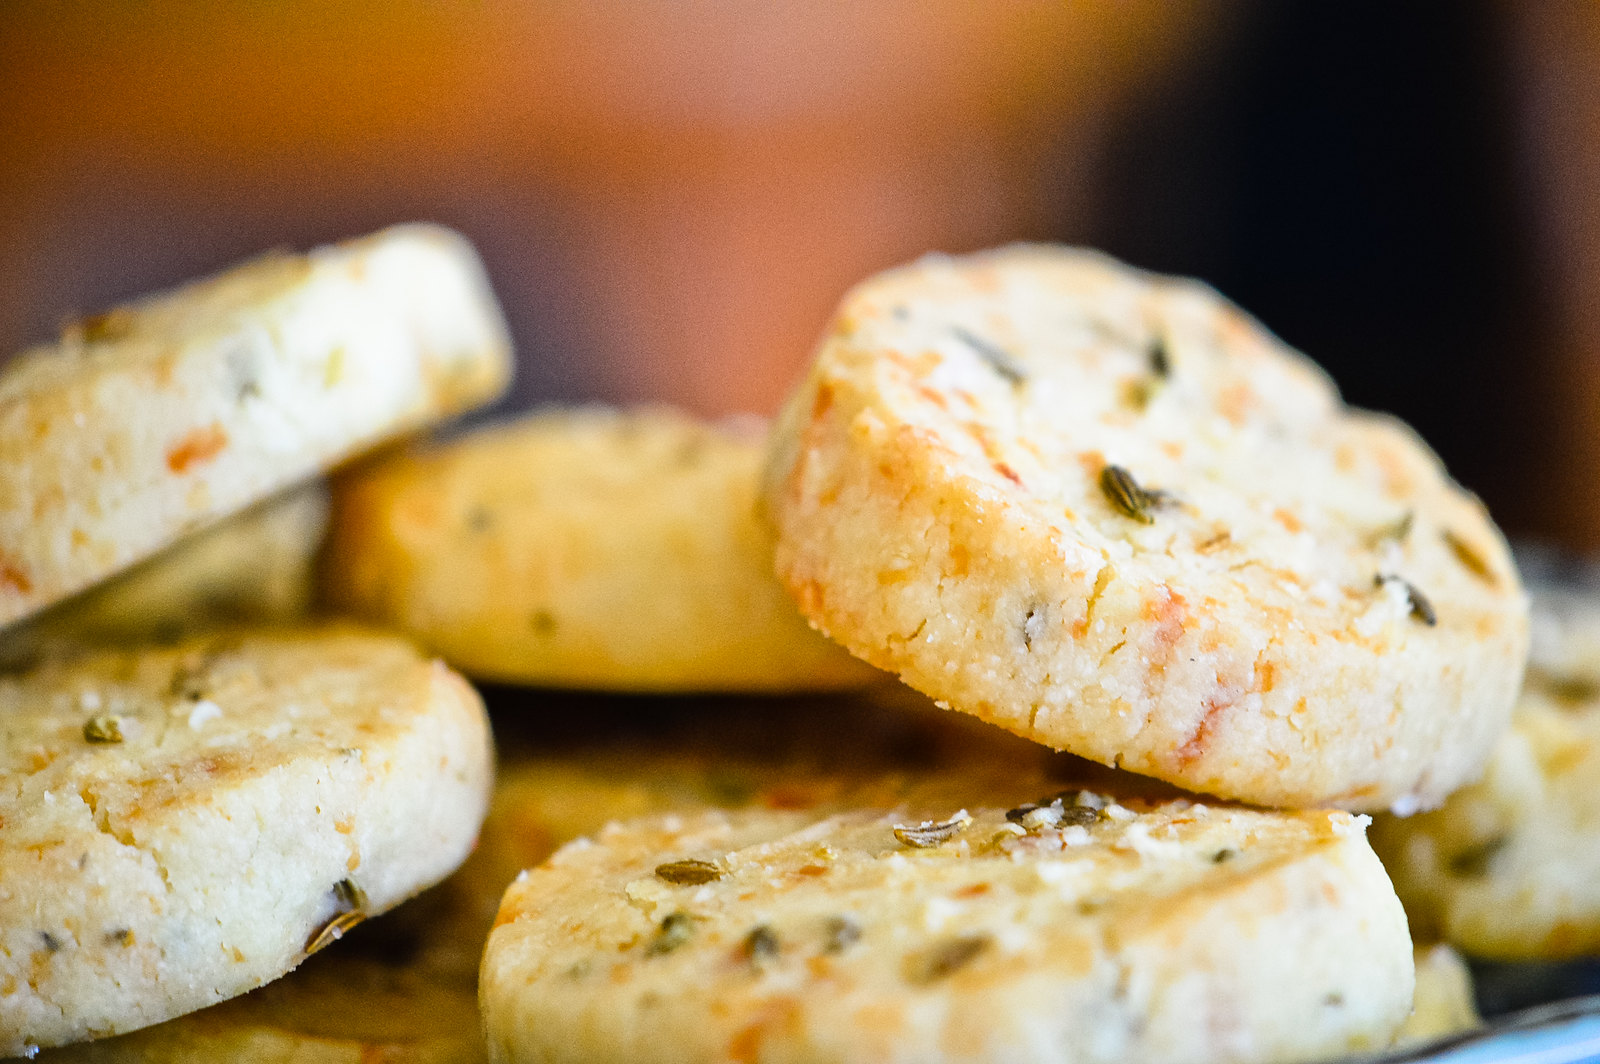 Savoury Cheese & Fennel Shortbread with Olive Oil + Sea Salt